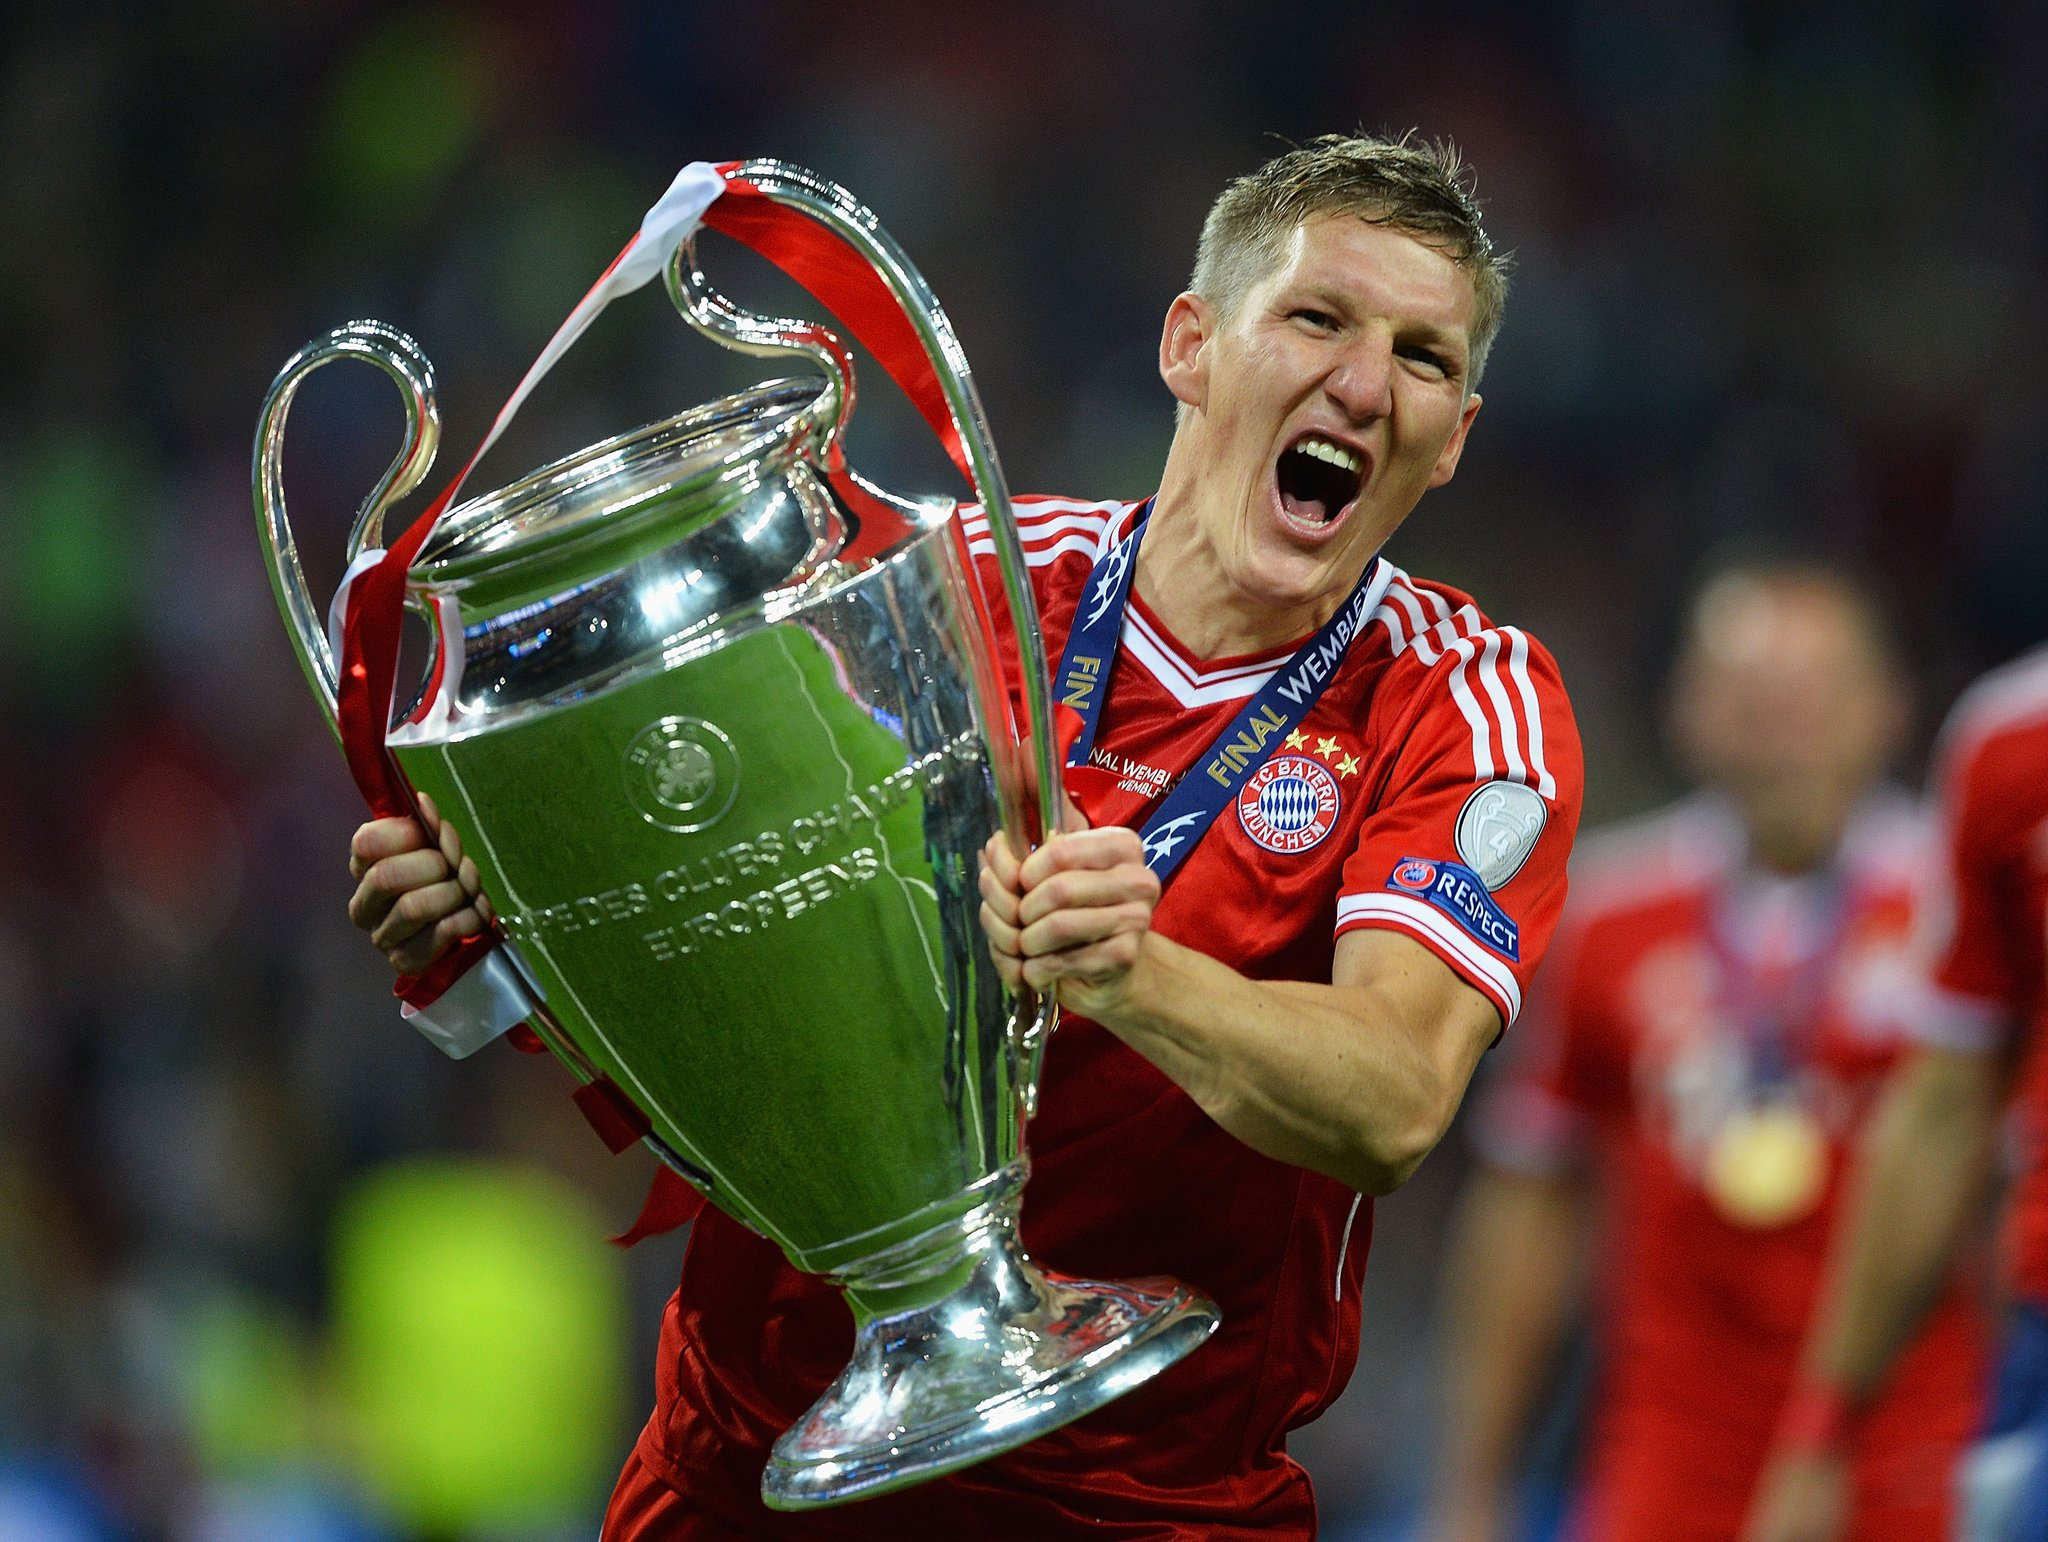 5⃣ years ago today, Bayern became champions! ��������  #UCLfinal #OnThisDay https://t.co/w0xMoObsUN